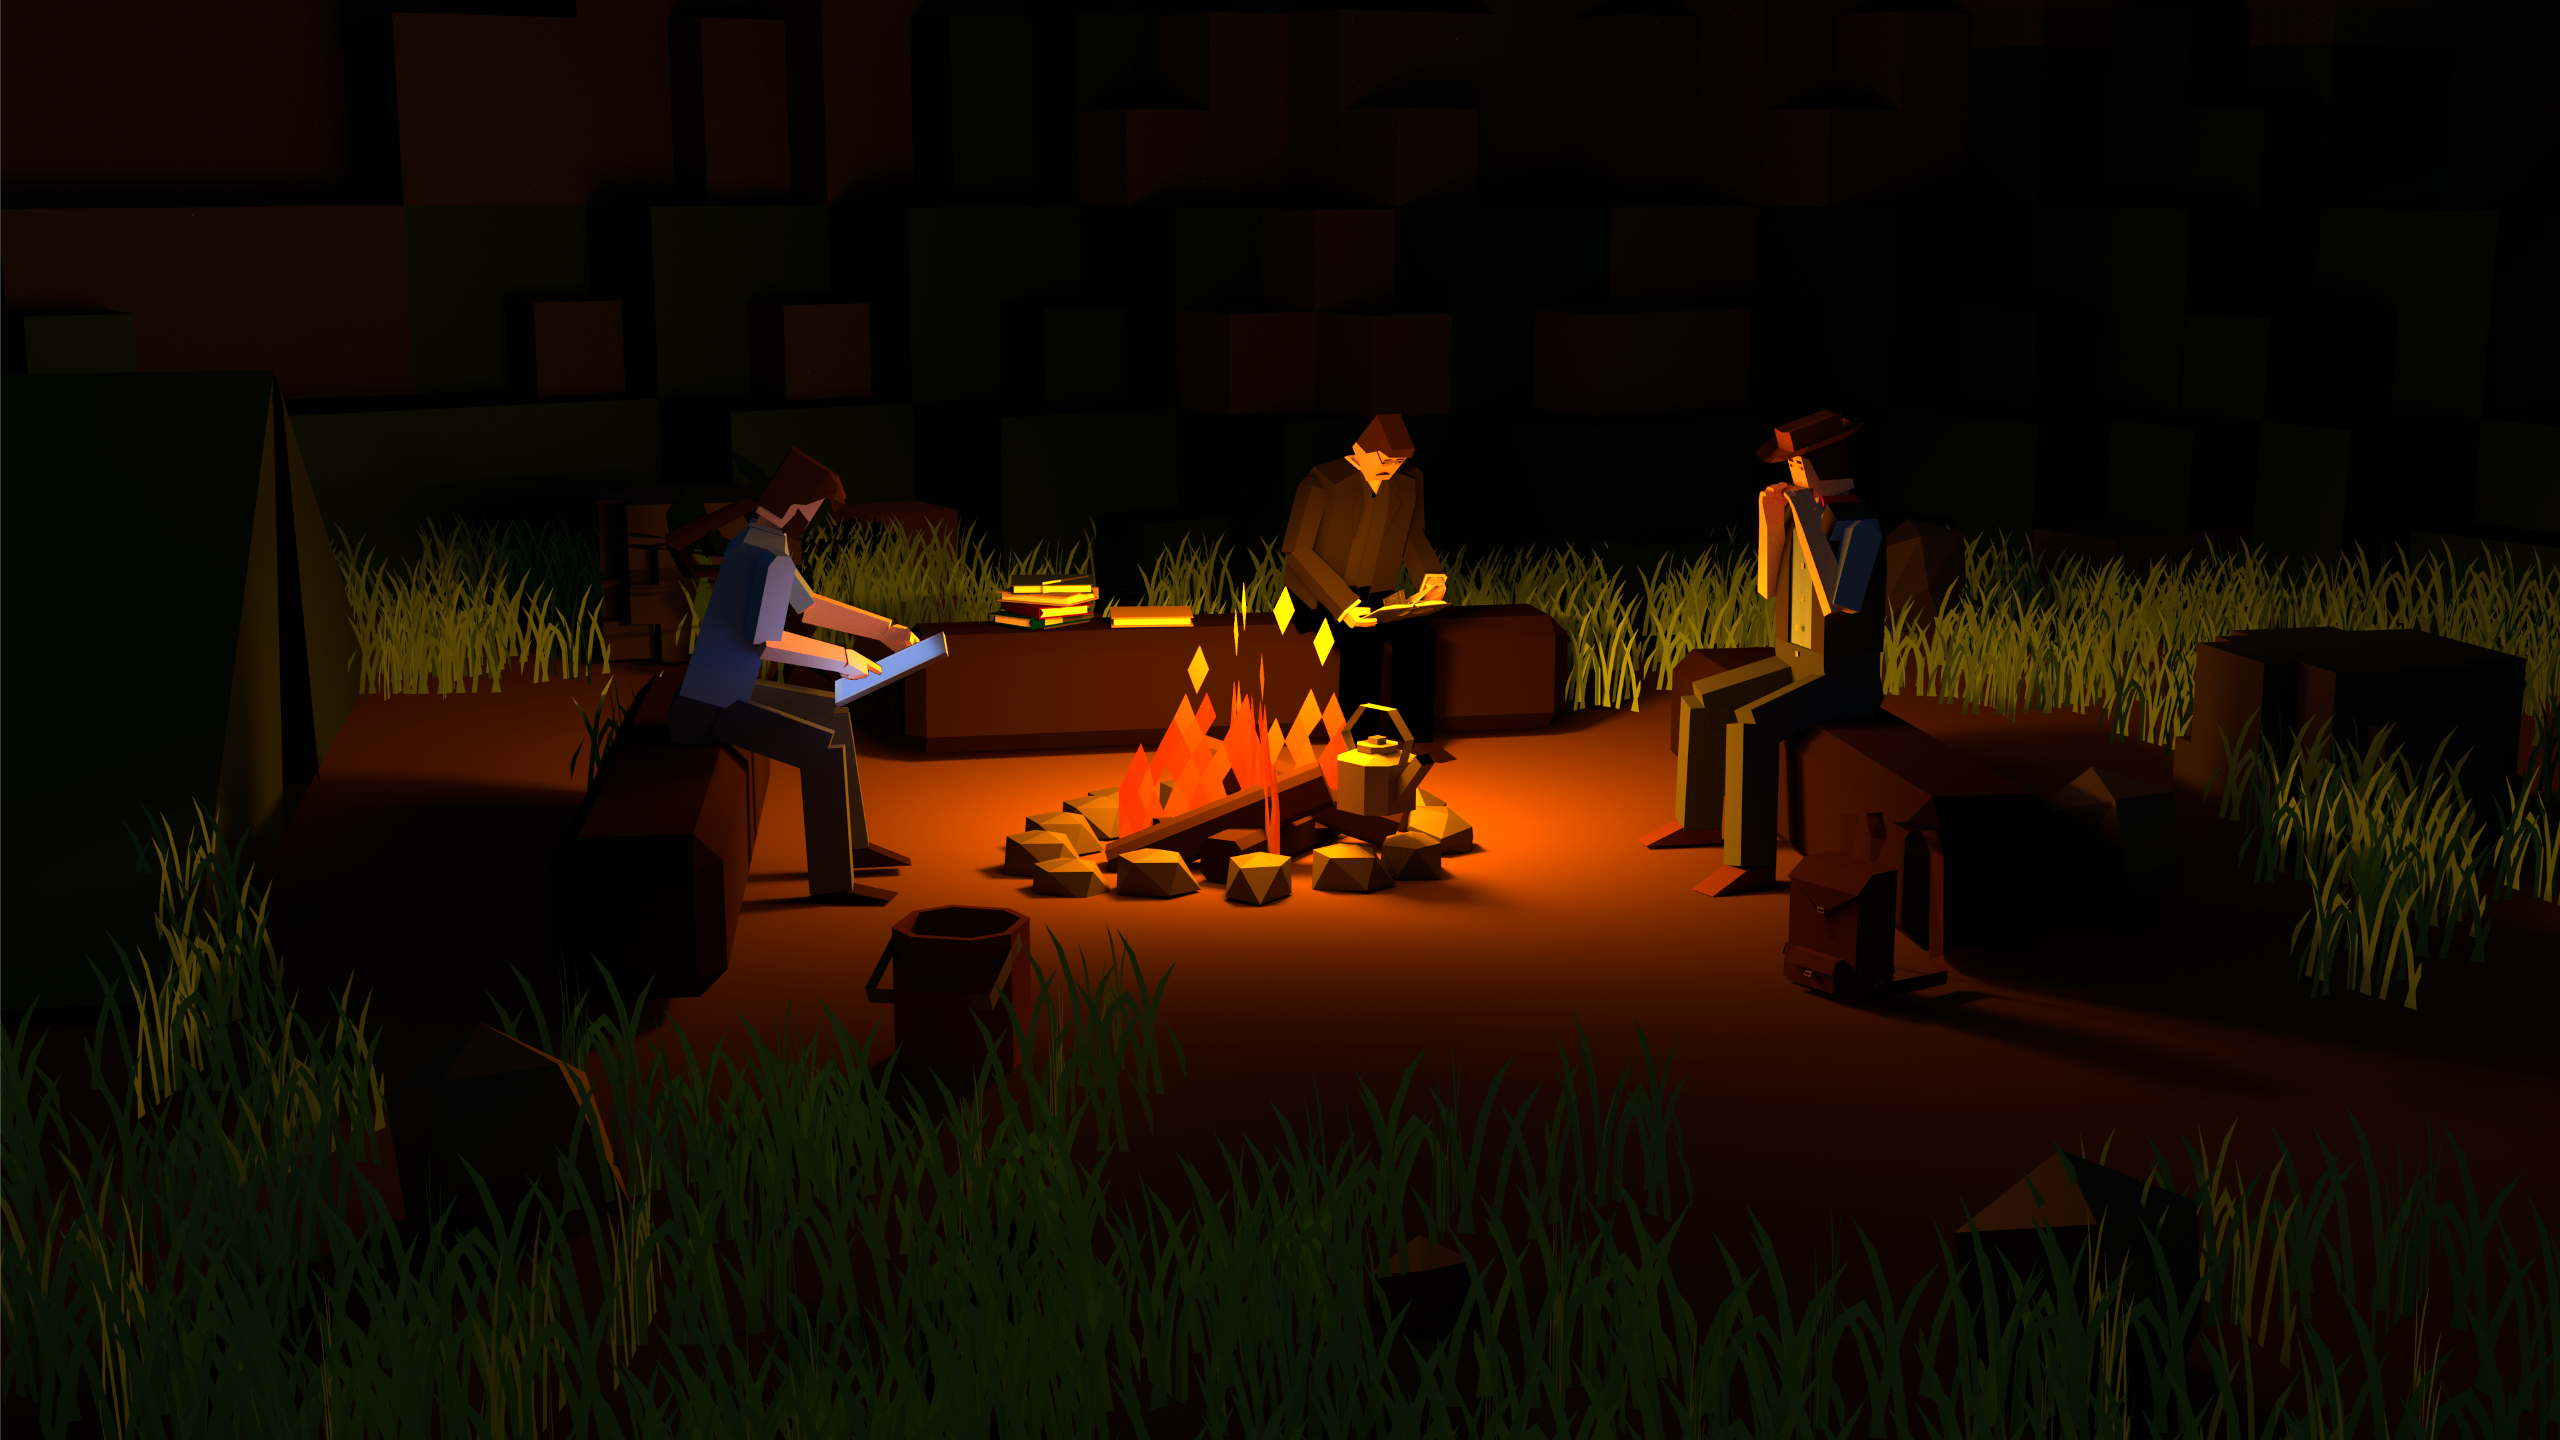 People sitting at campfire